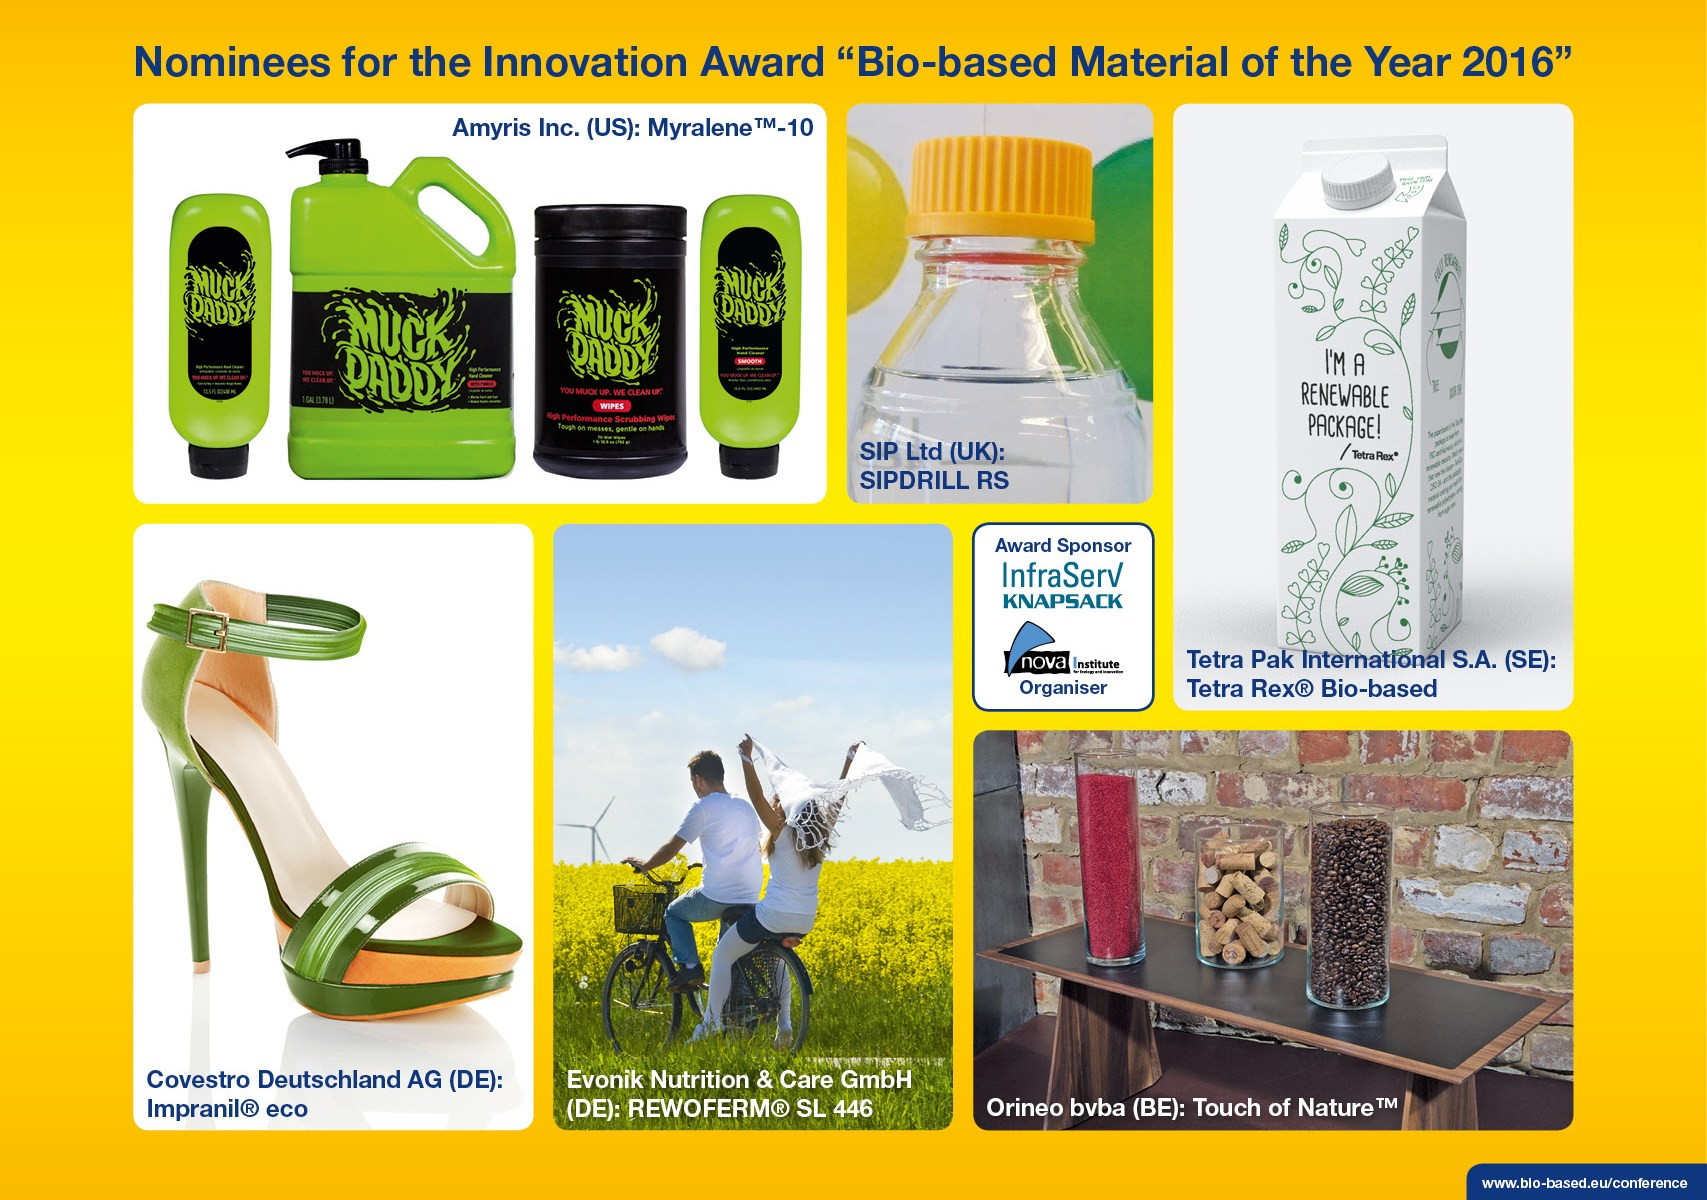 bioplastic material of the year 2016